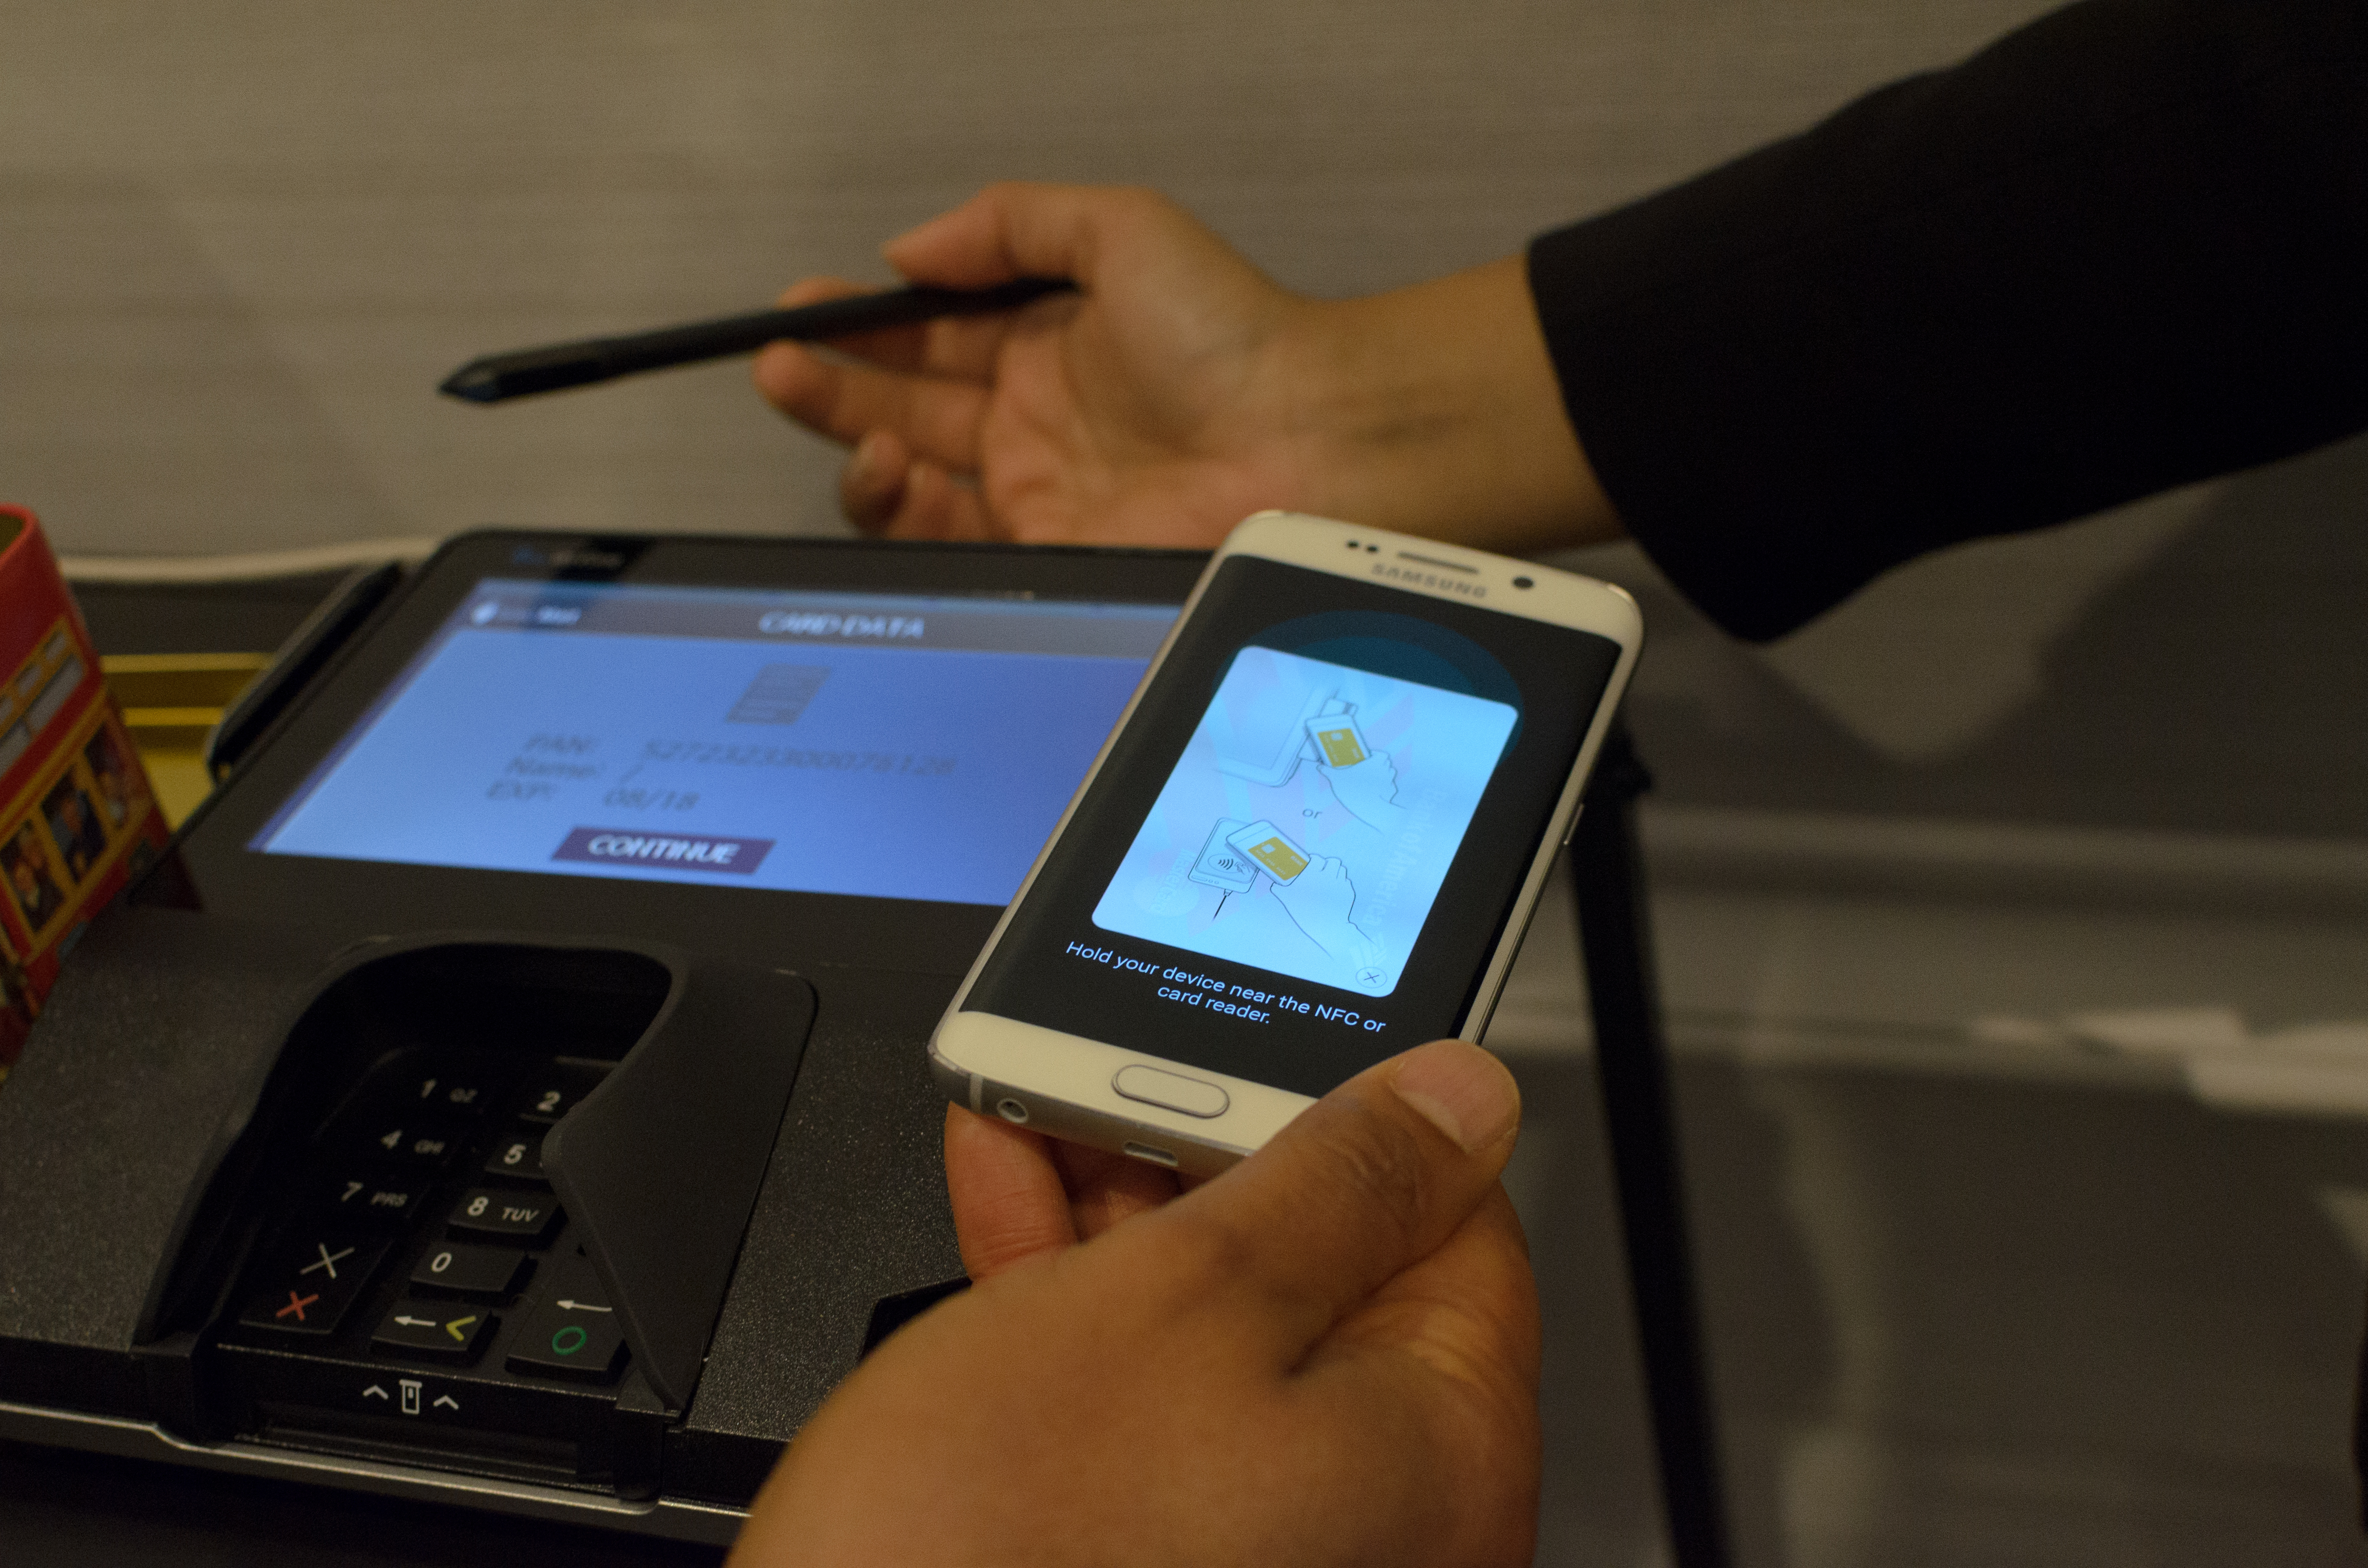 Software, Samsung Pay, and Accessories - Hands On With the Samsung